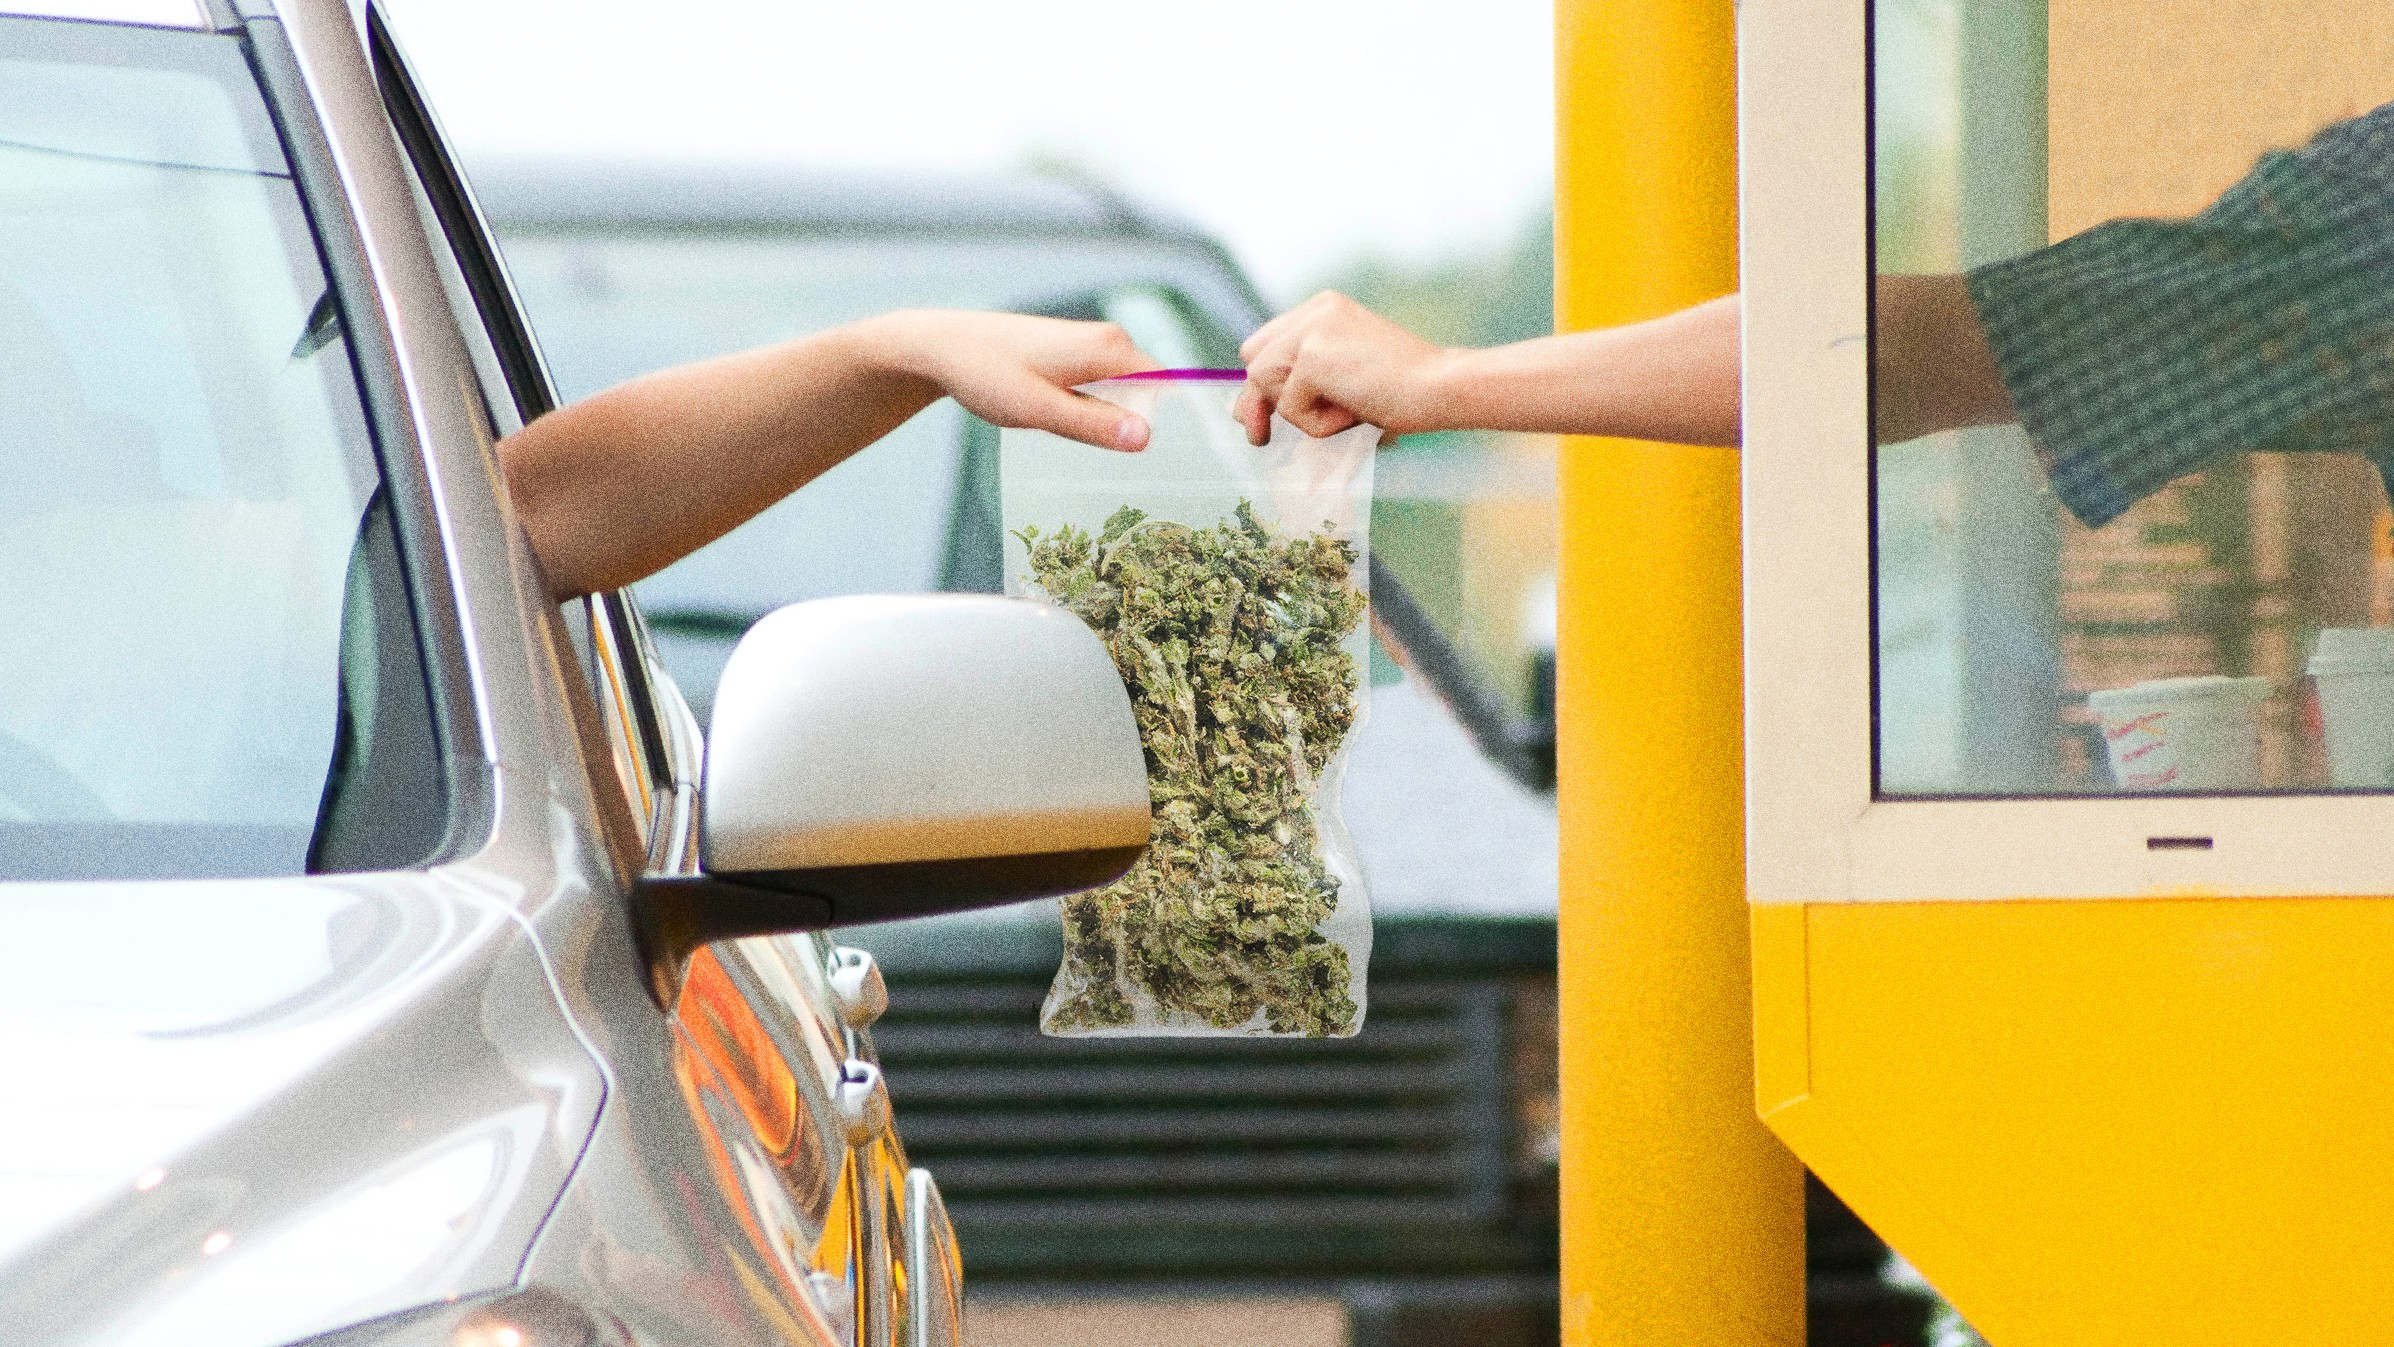 Drive Thru Car Wash >> You Can Now Buy Weed from a Drive-Thru in Colorado - VICE